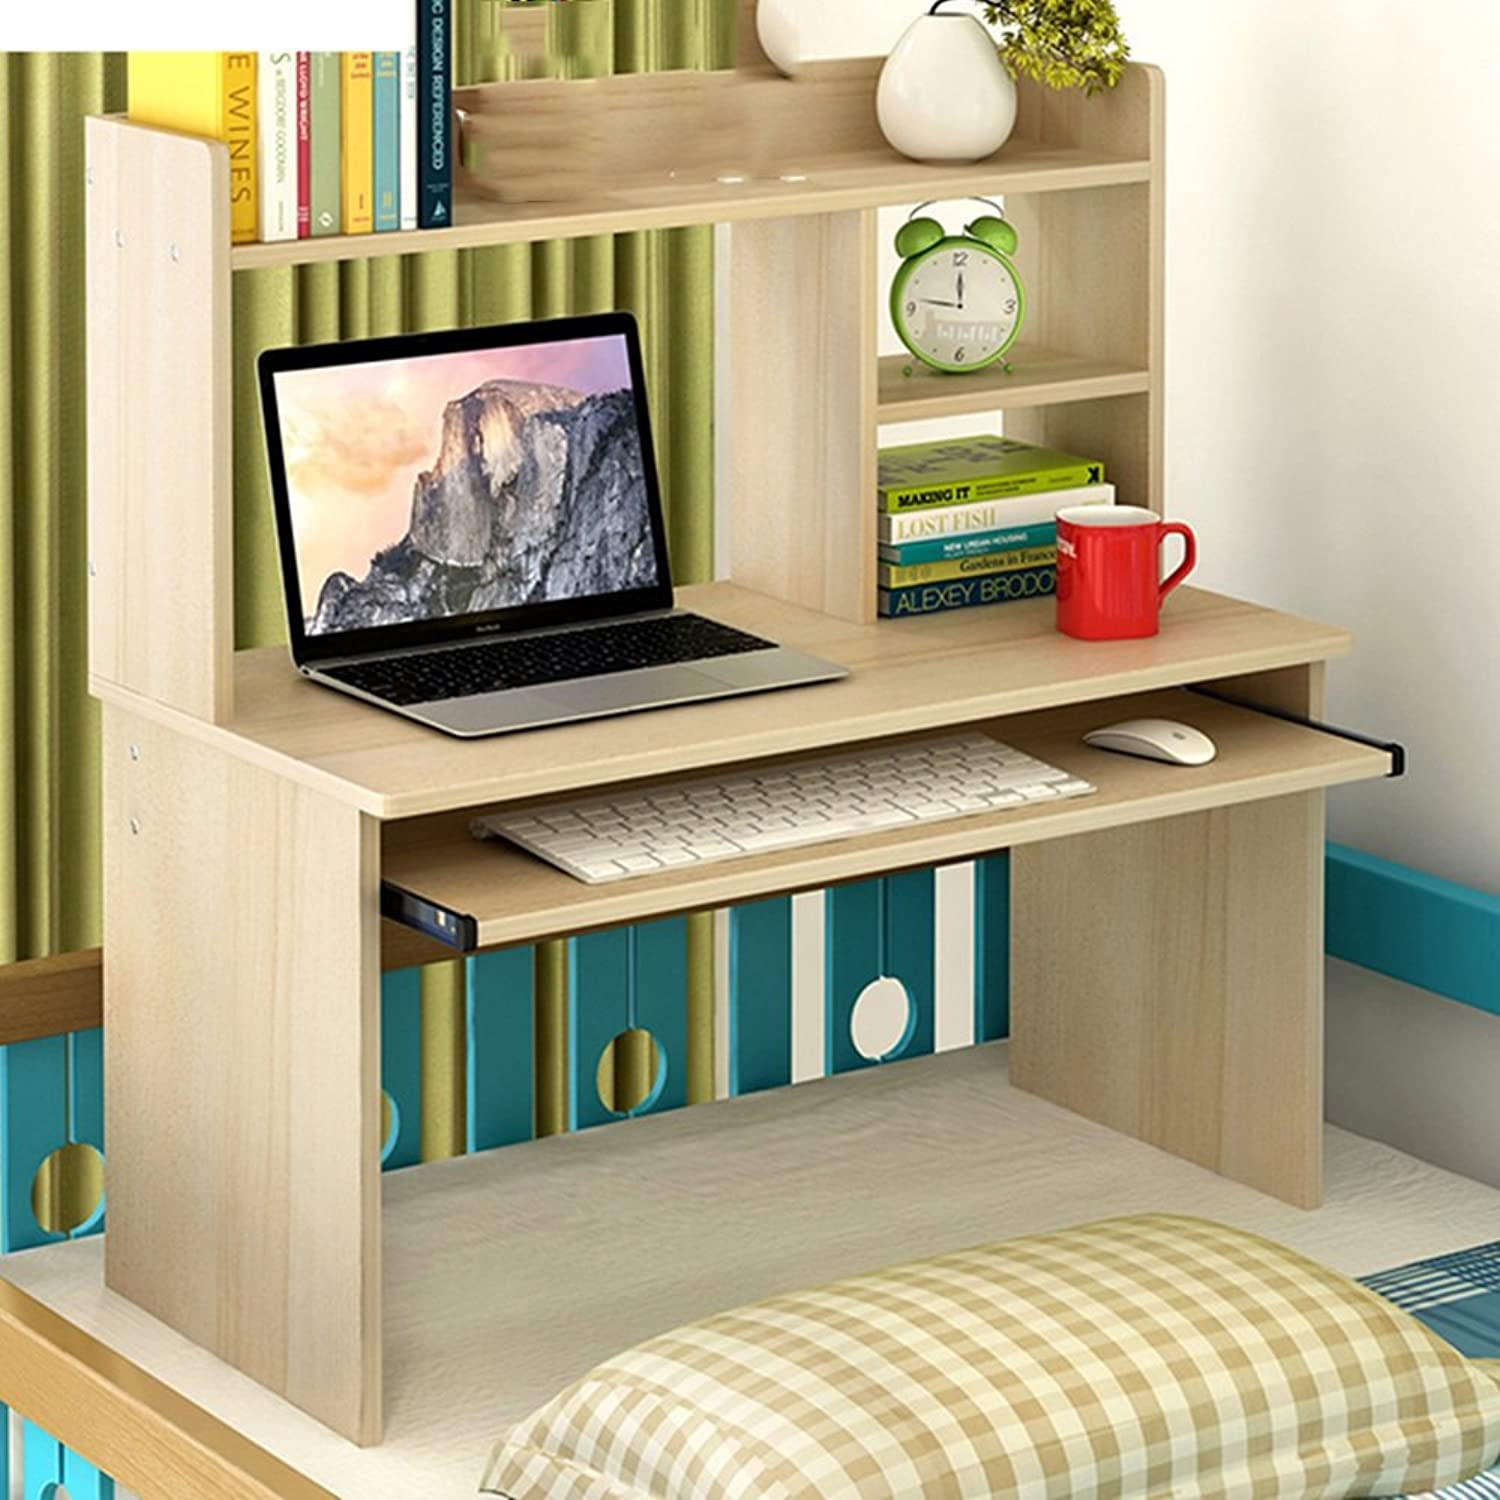 ZZ Folding Table Bed Computer Desk Lazy Table Simple Bedroom Study Small Desk 4 colors Available 80  80cm (color   A)